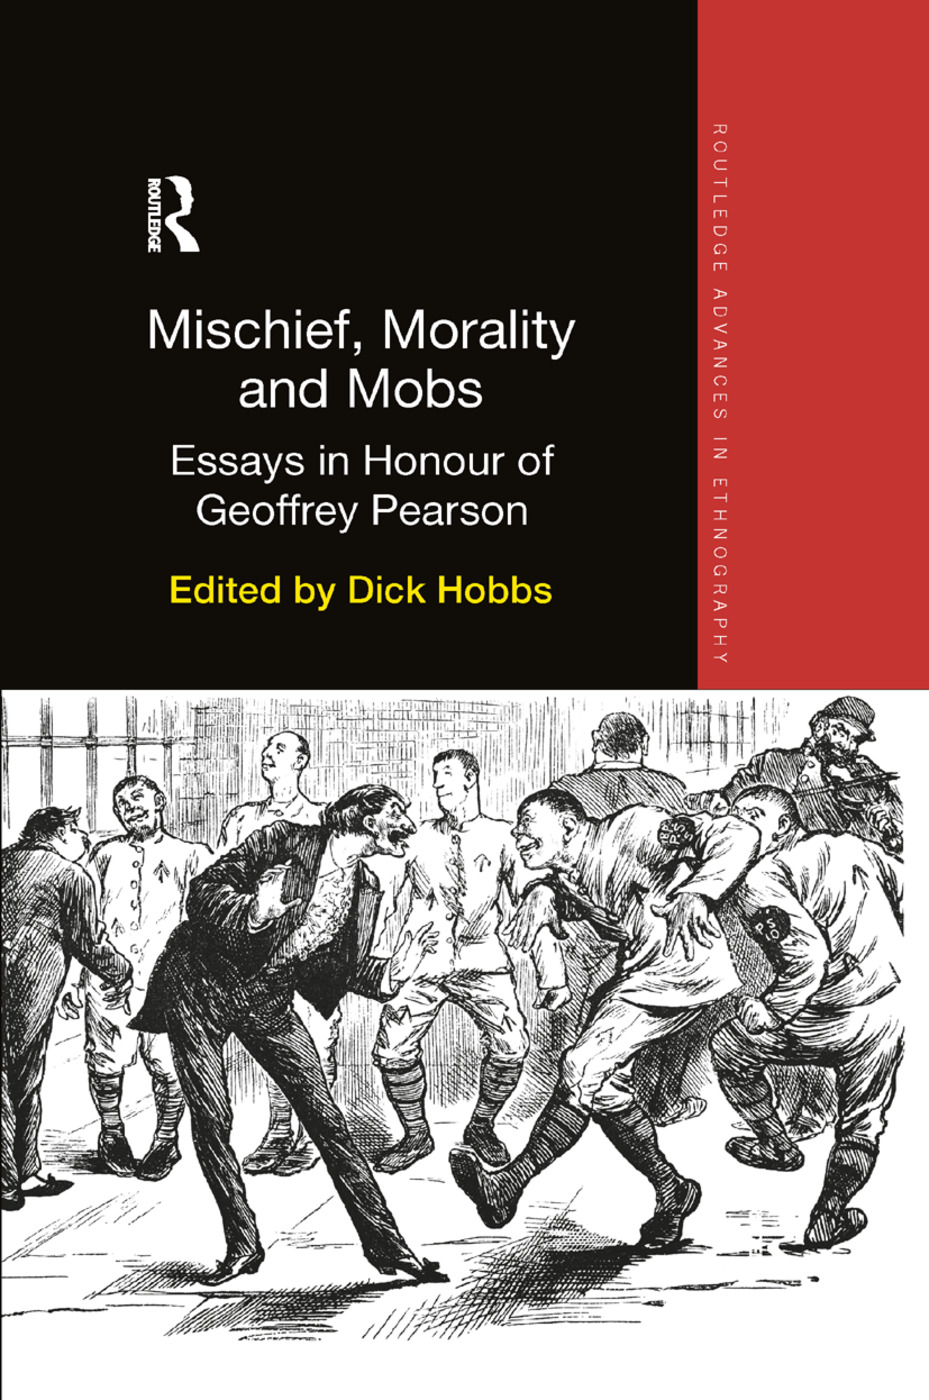 Mischief, Morality and Mobs: Essays in Honour of Geoffrey Pearson book cover